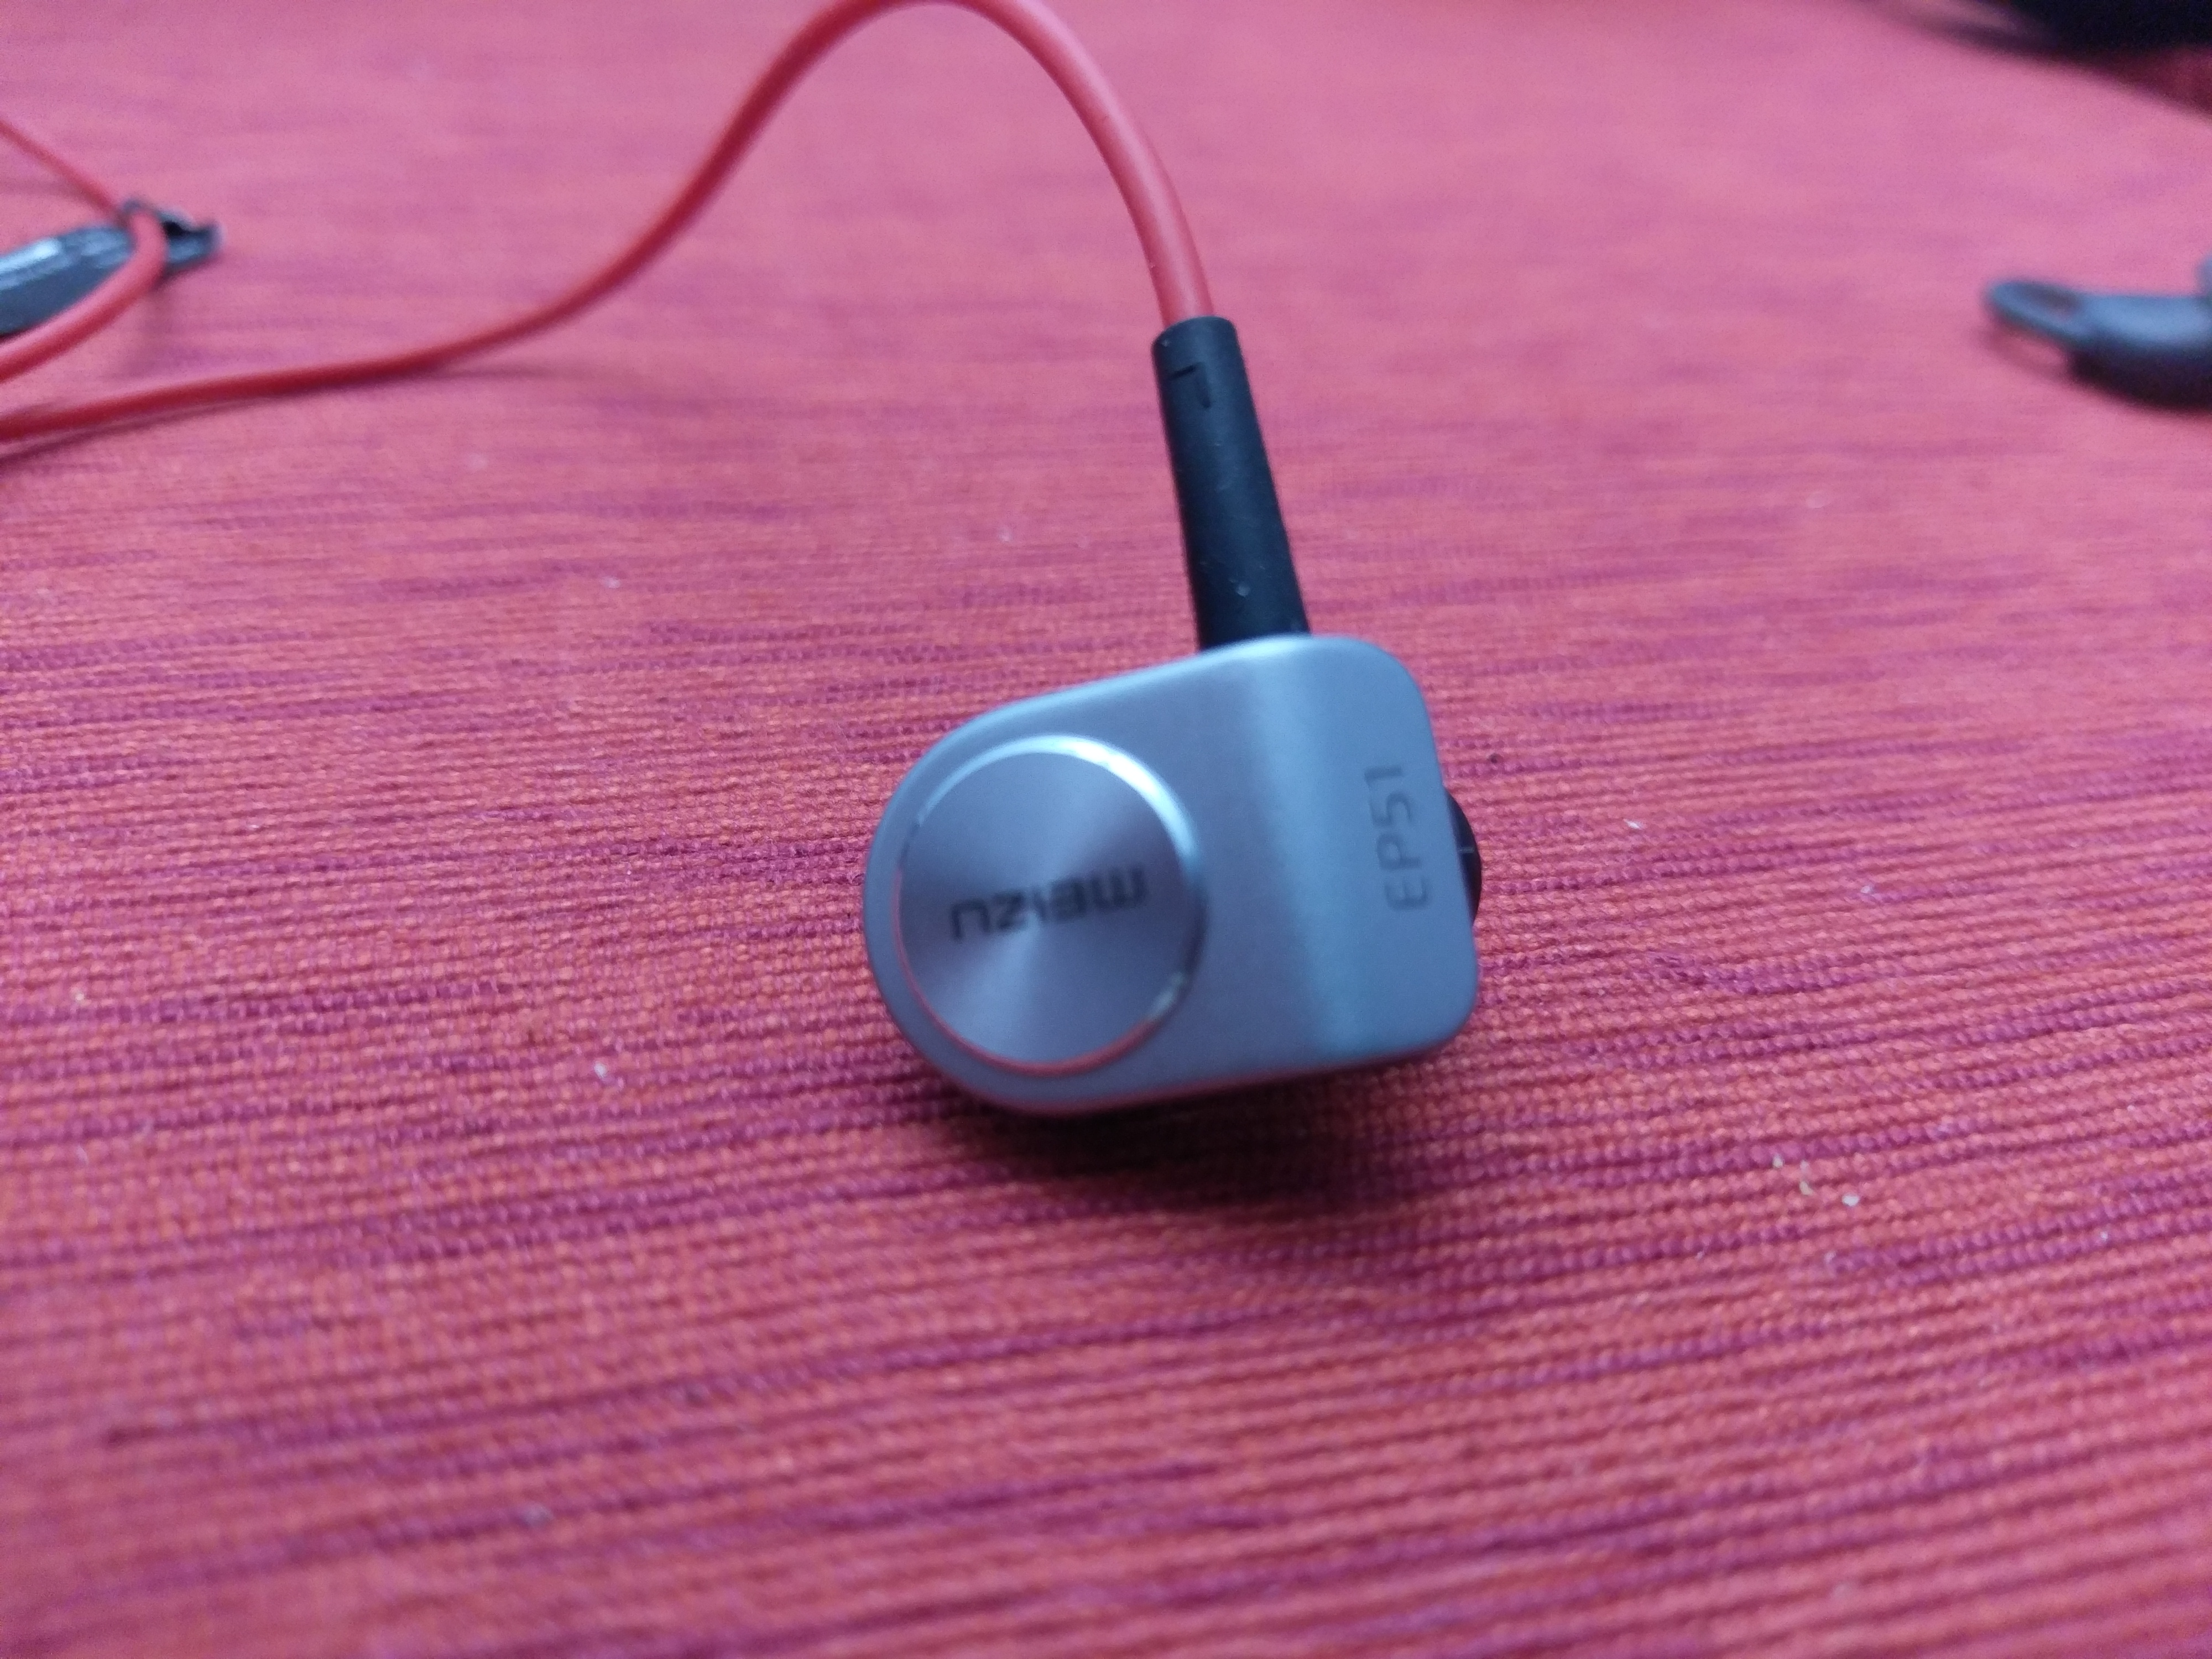 Jlab earbuds active noise - phiaton noise cancelling earbuds